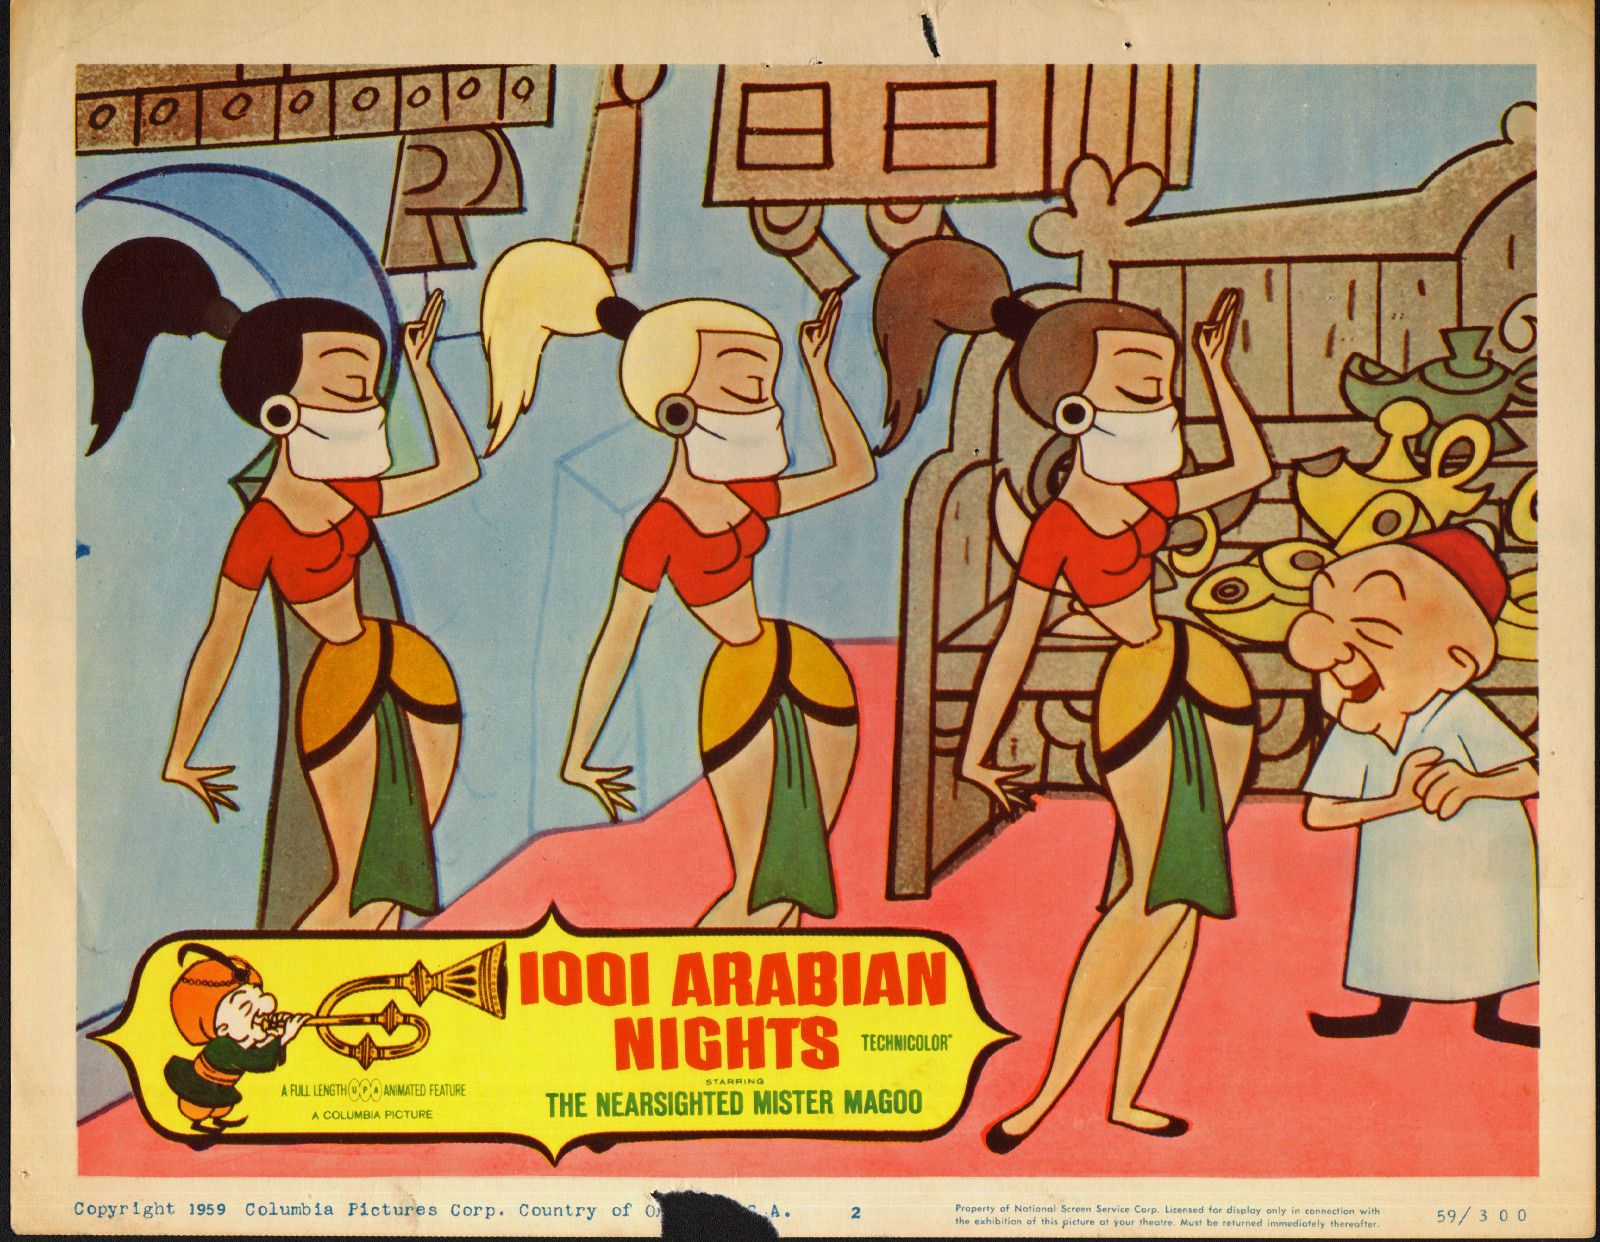 1001 Arabian Nights Original 1959 Lobby Card Mister Magoo 11x14